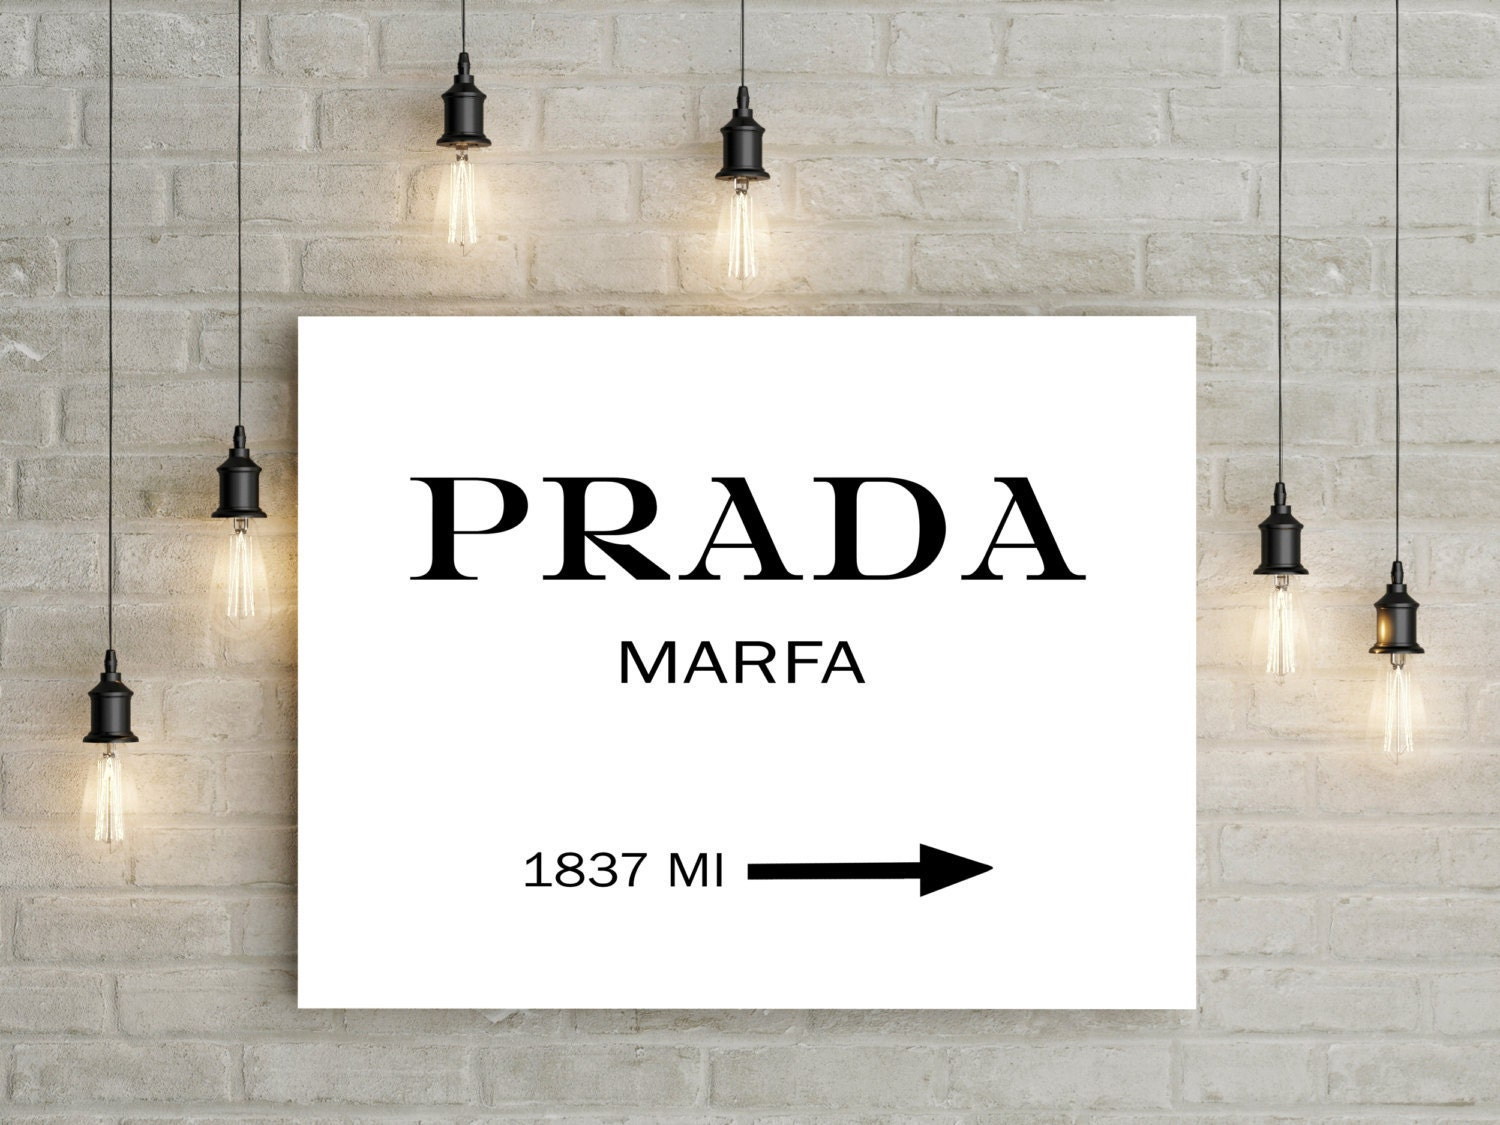 prada marfa art prada marfa poster fashion by believeindreamsstore. Black Bedroom Furniture Sets. Home Design Ideas